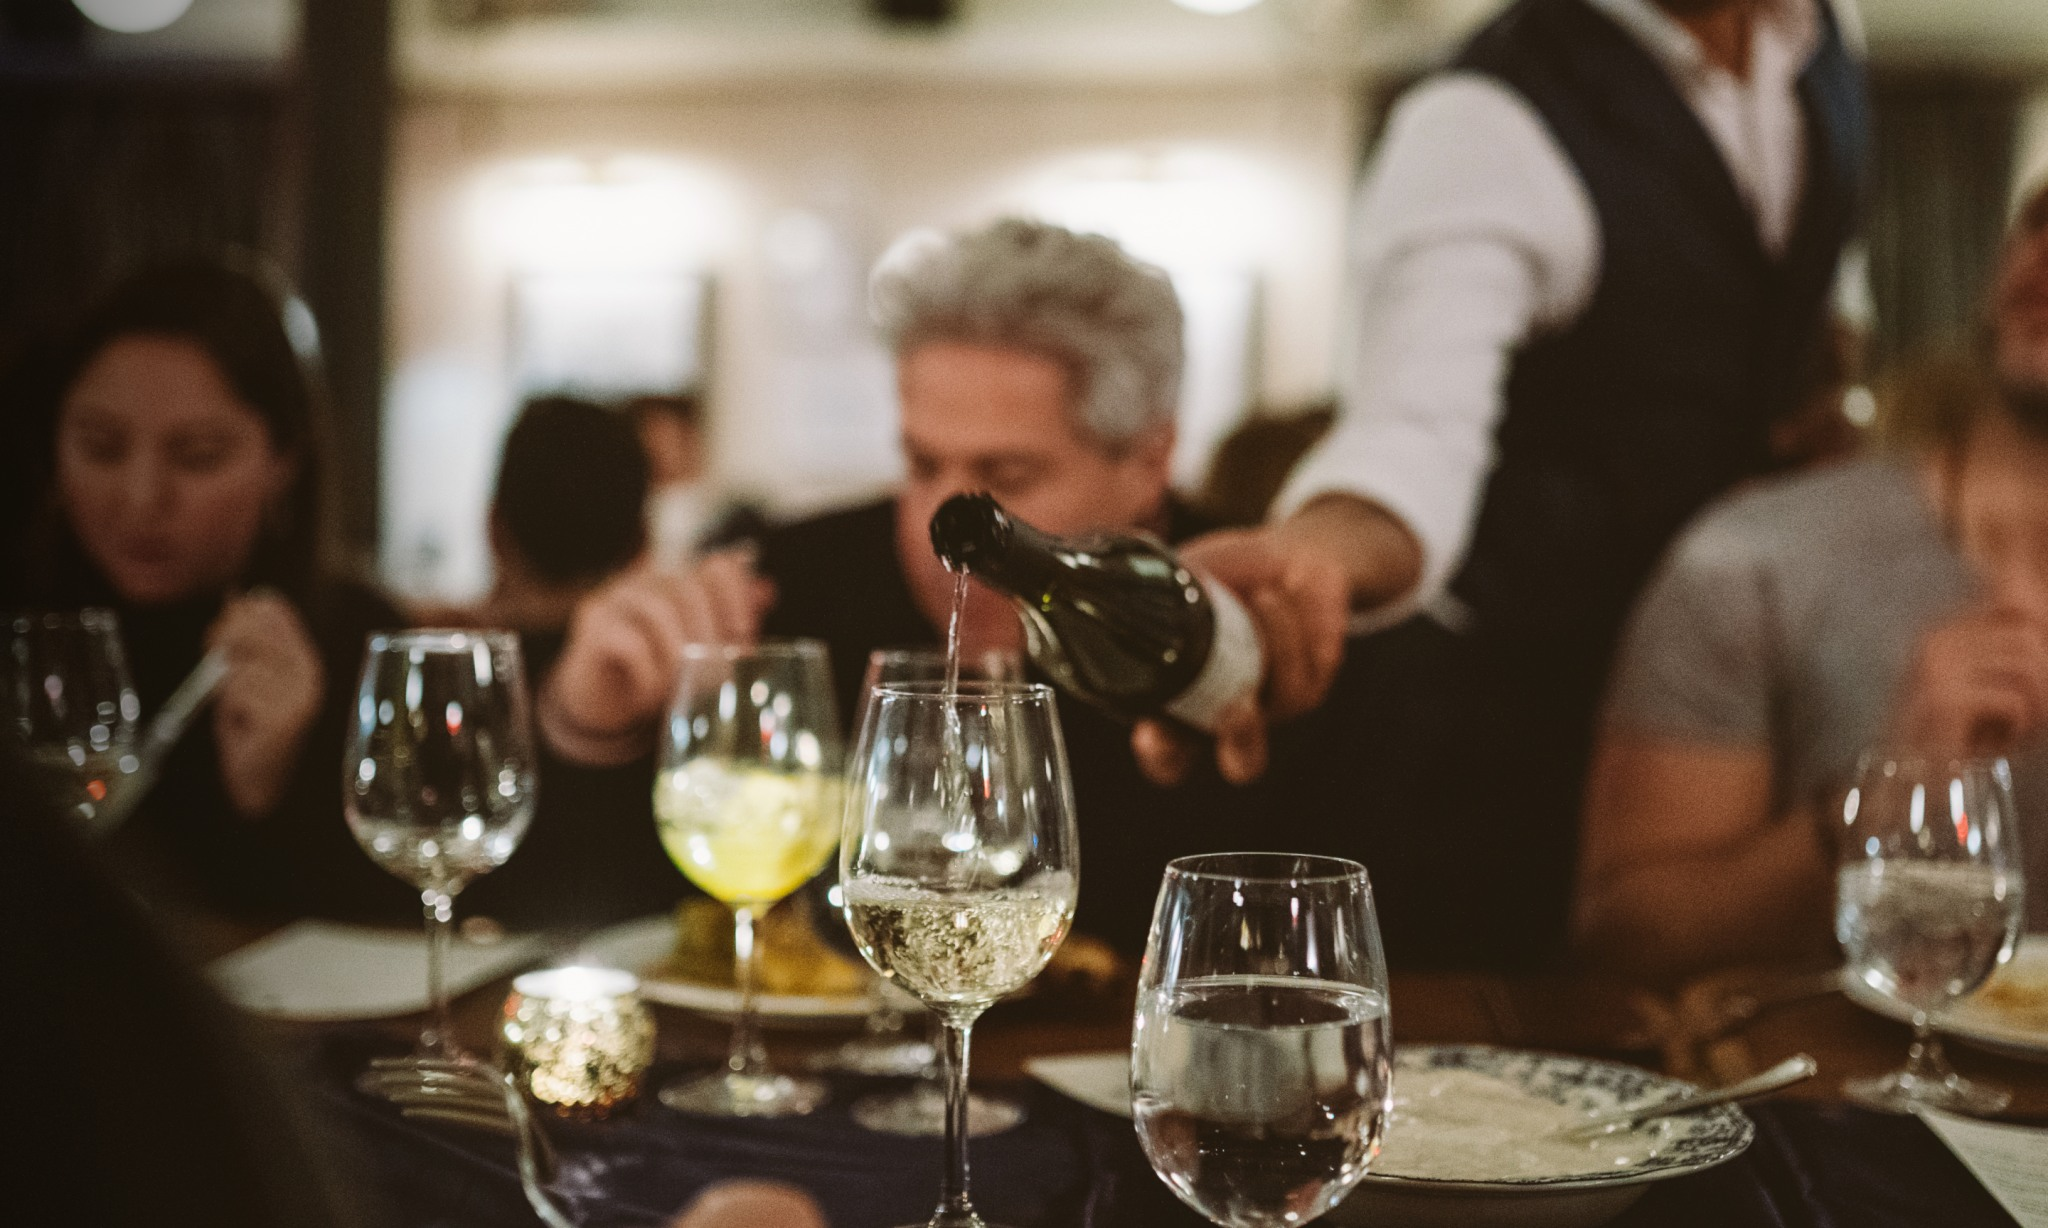 A waiter serves wine to a table of diners.